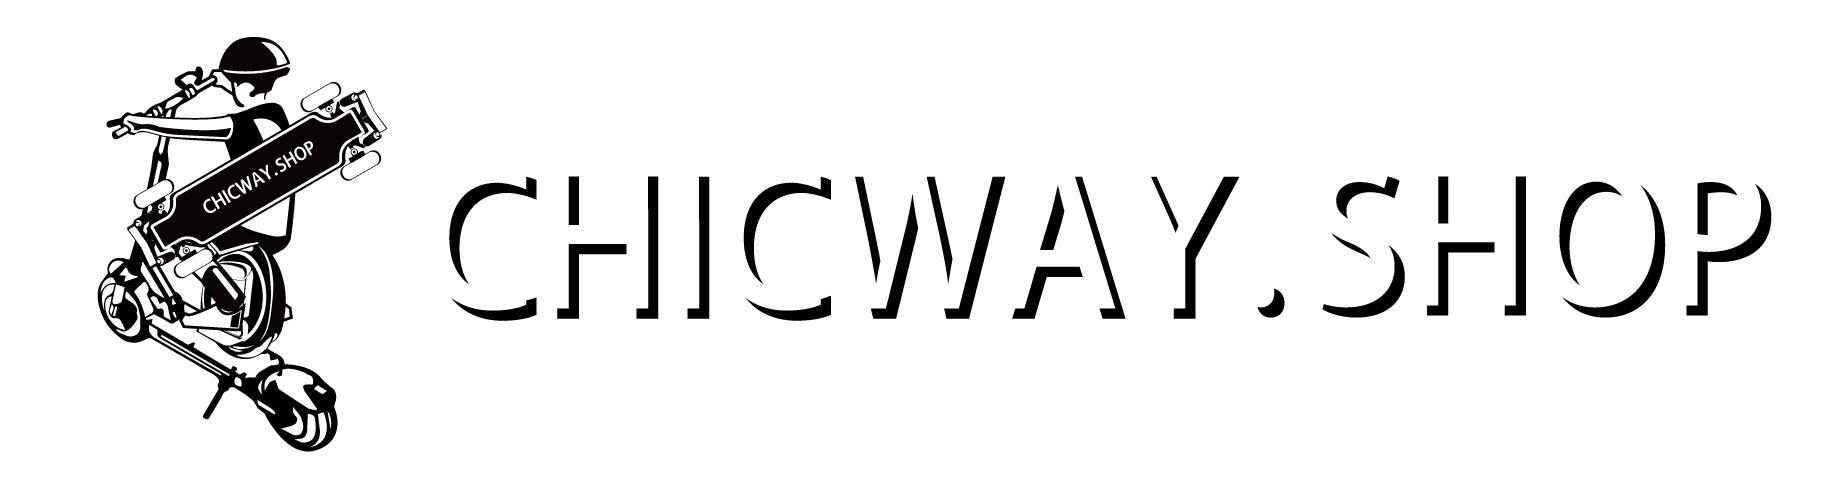 chicway.shop